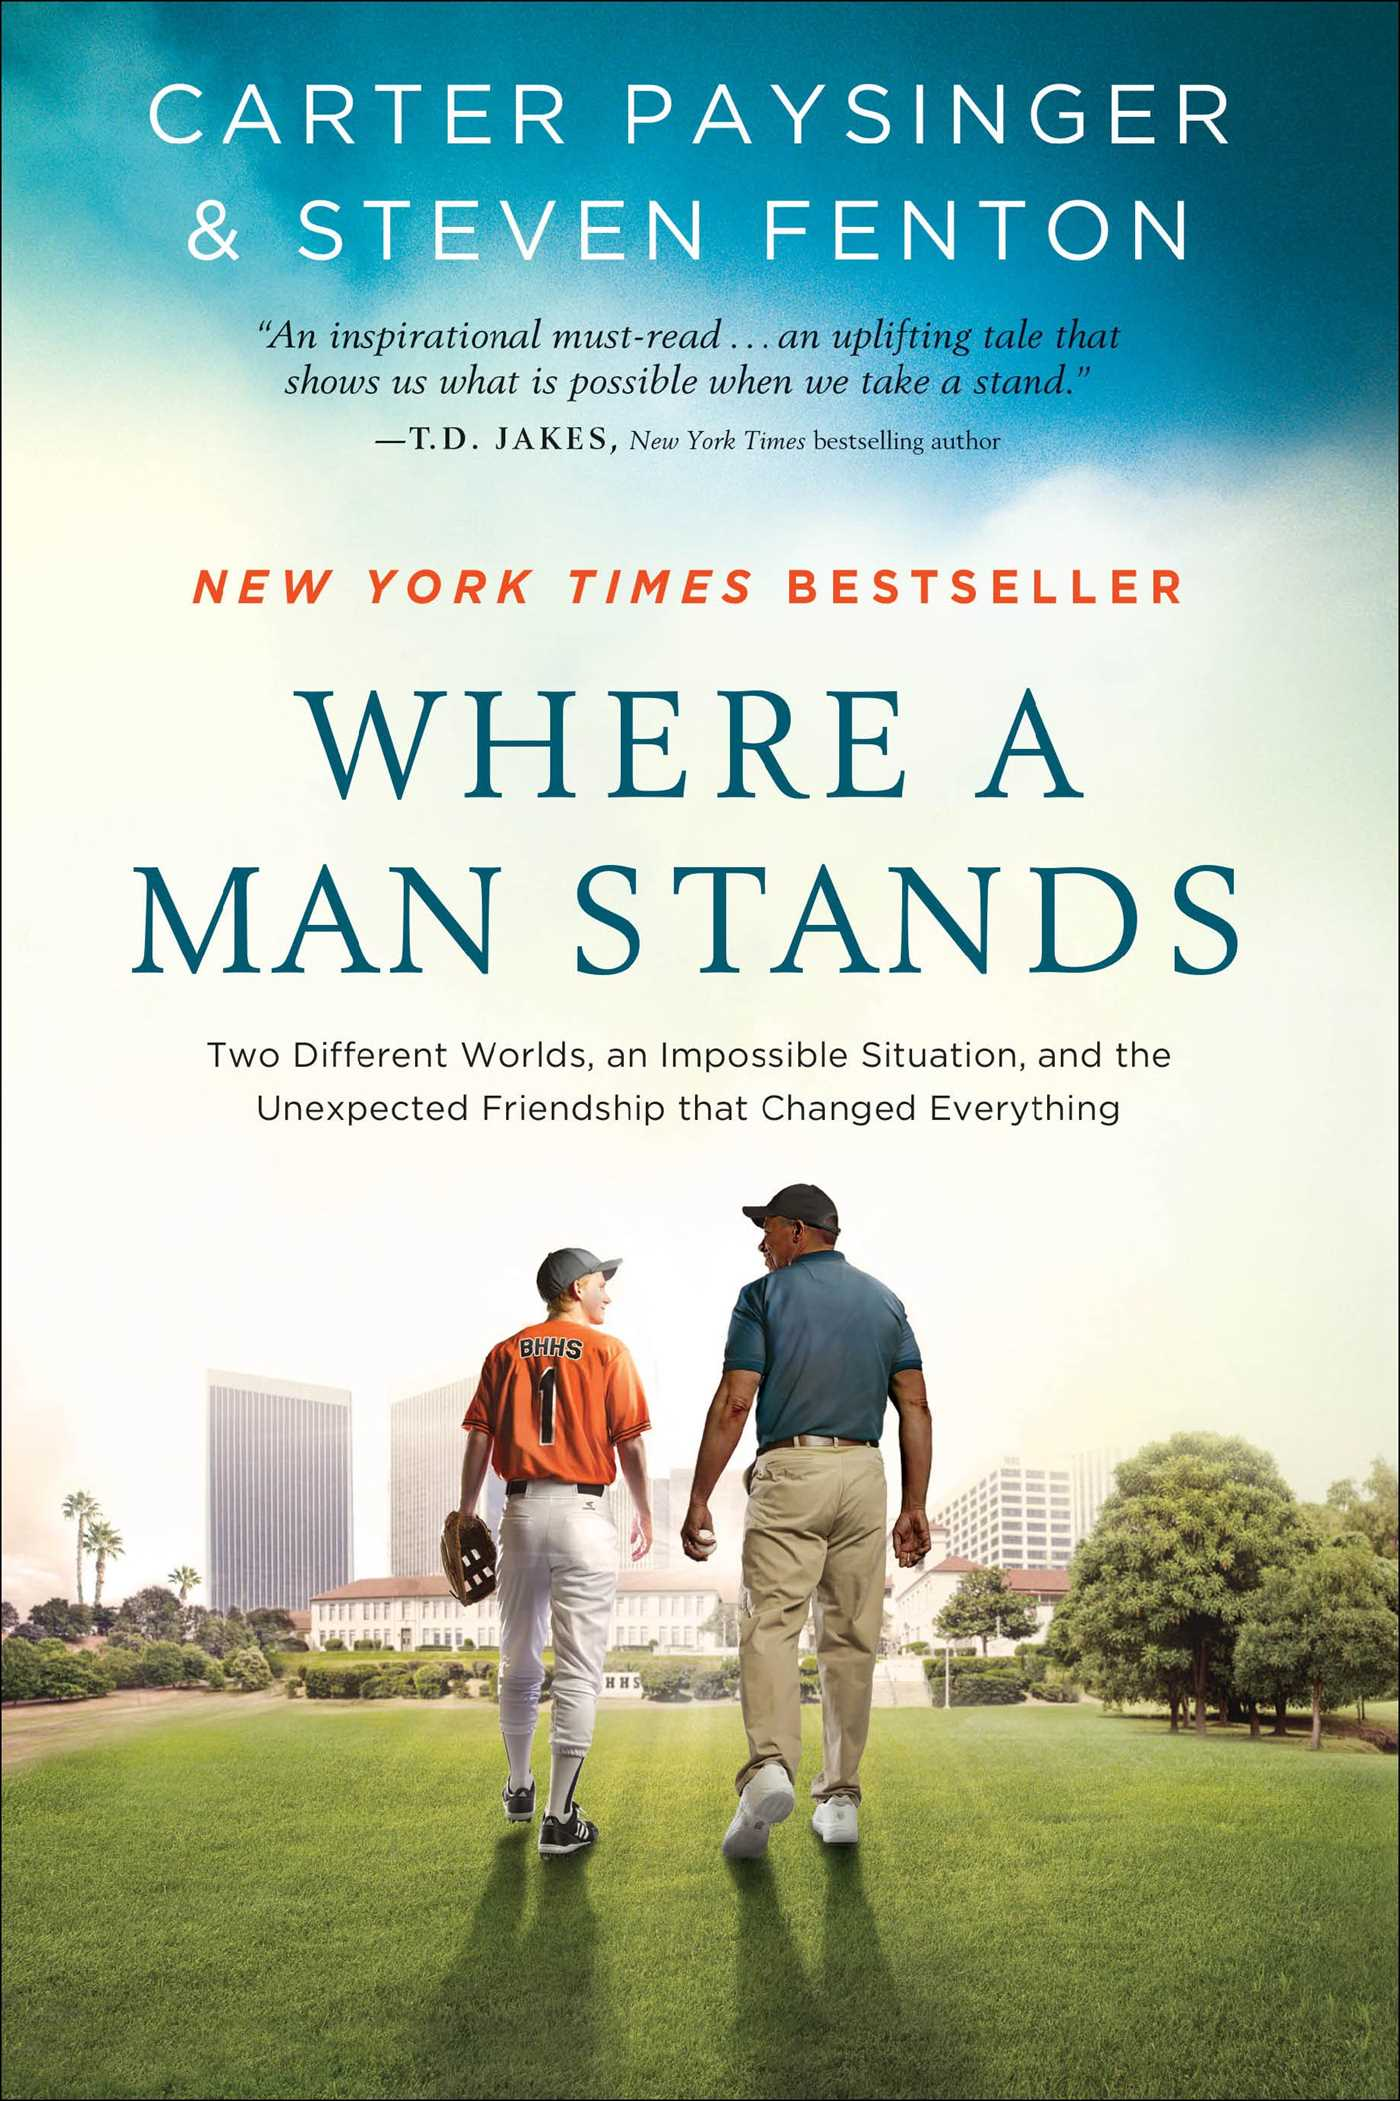 Where-a-man-stands-9781476711409_hr